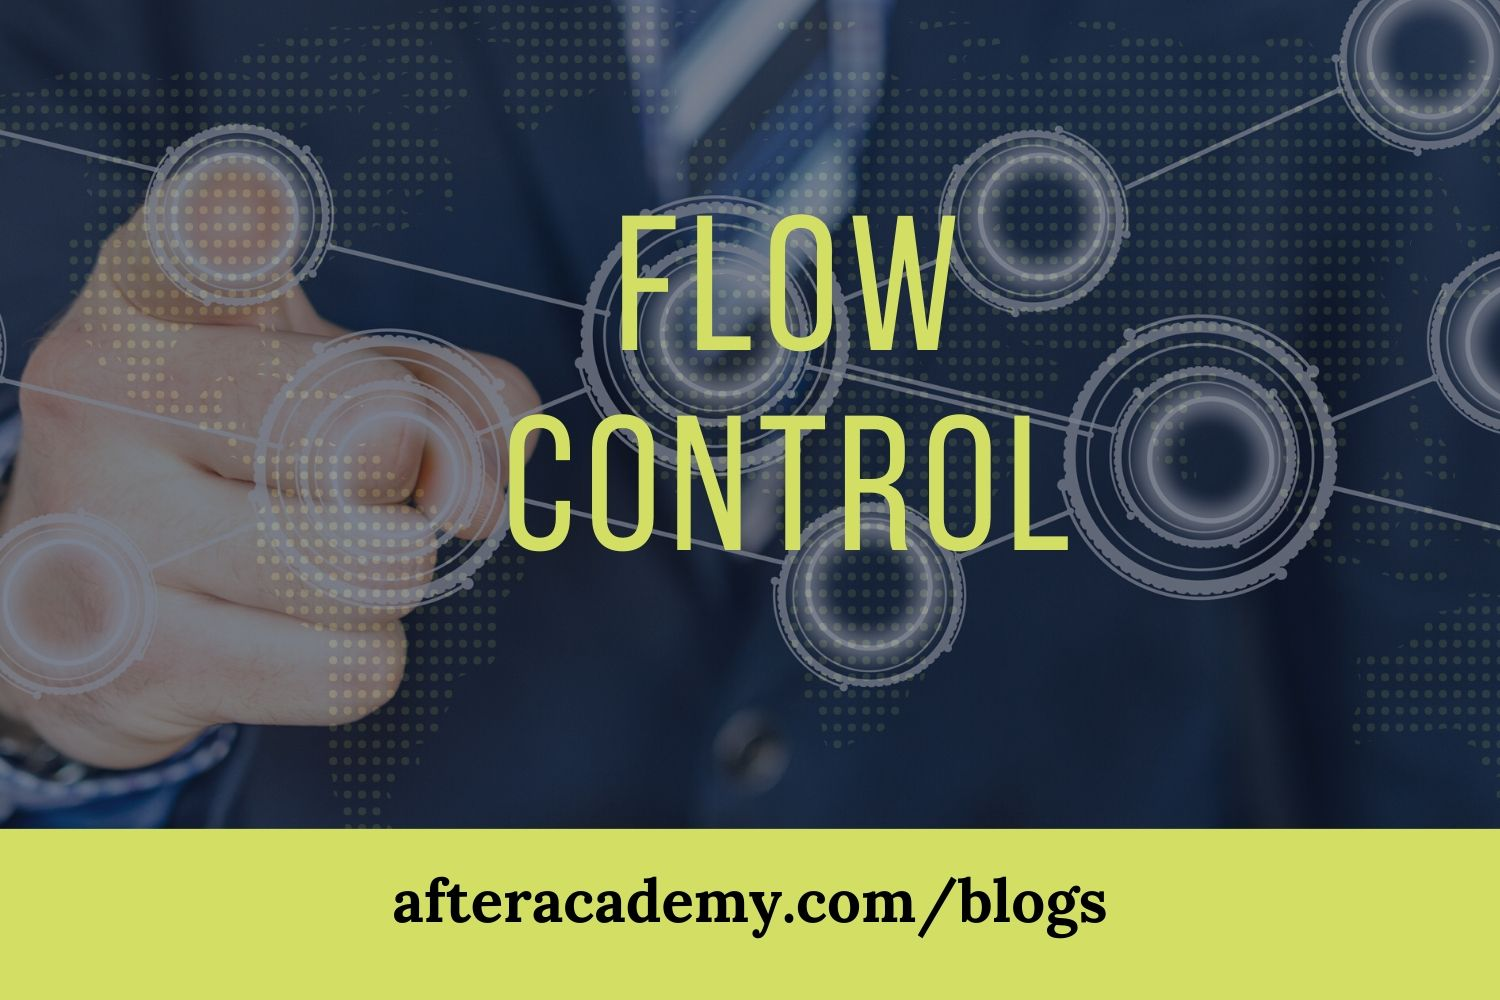 What is Flow-Control in networking?